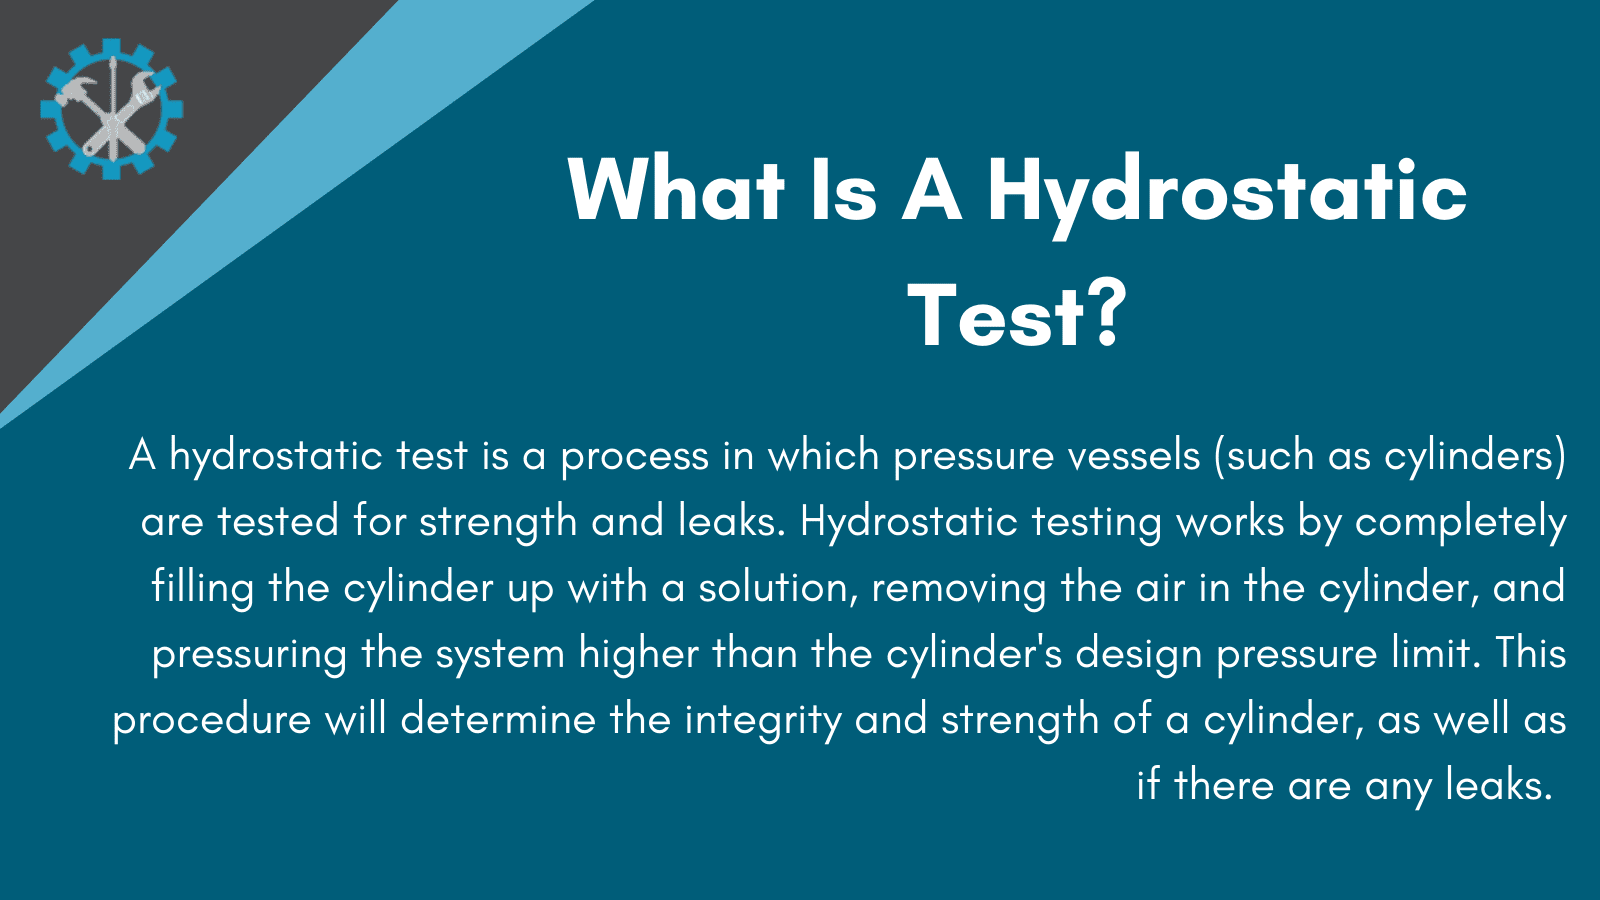 why do cylinders need hydrostatic testing infographic